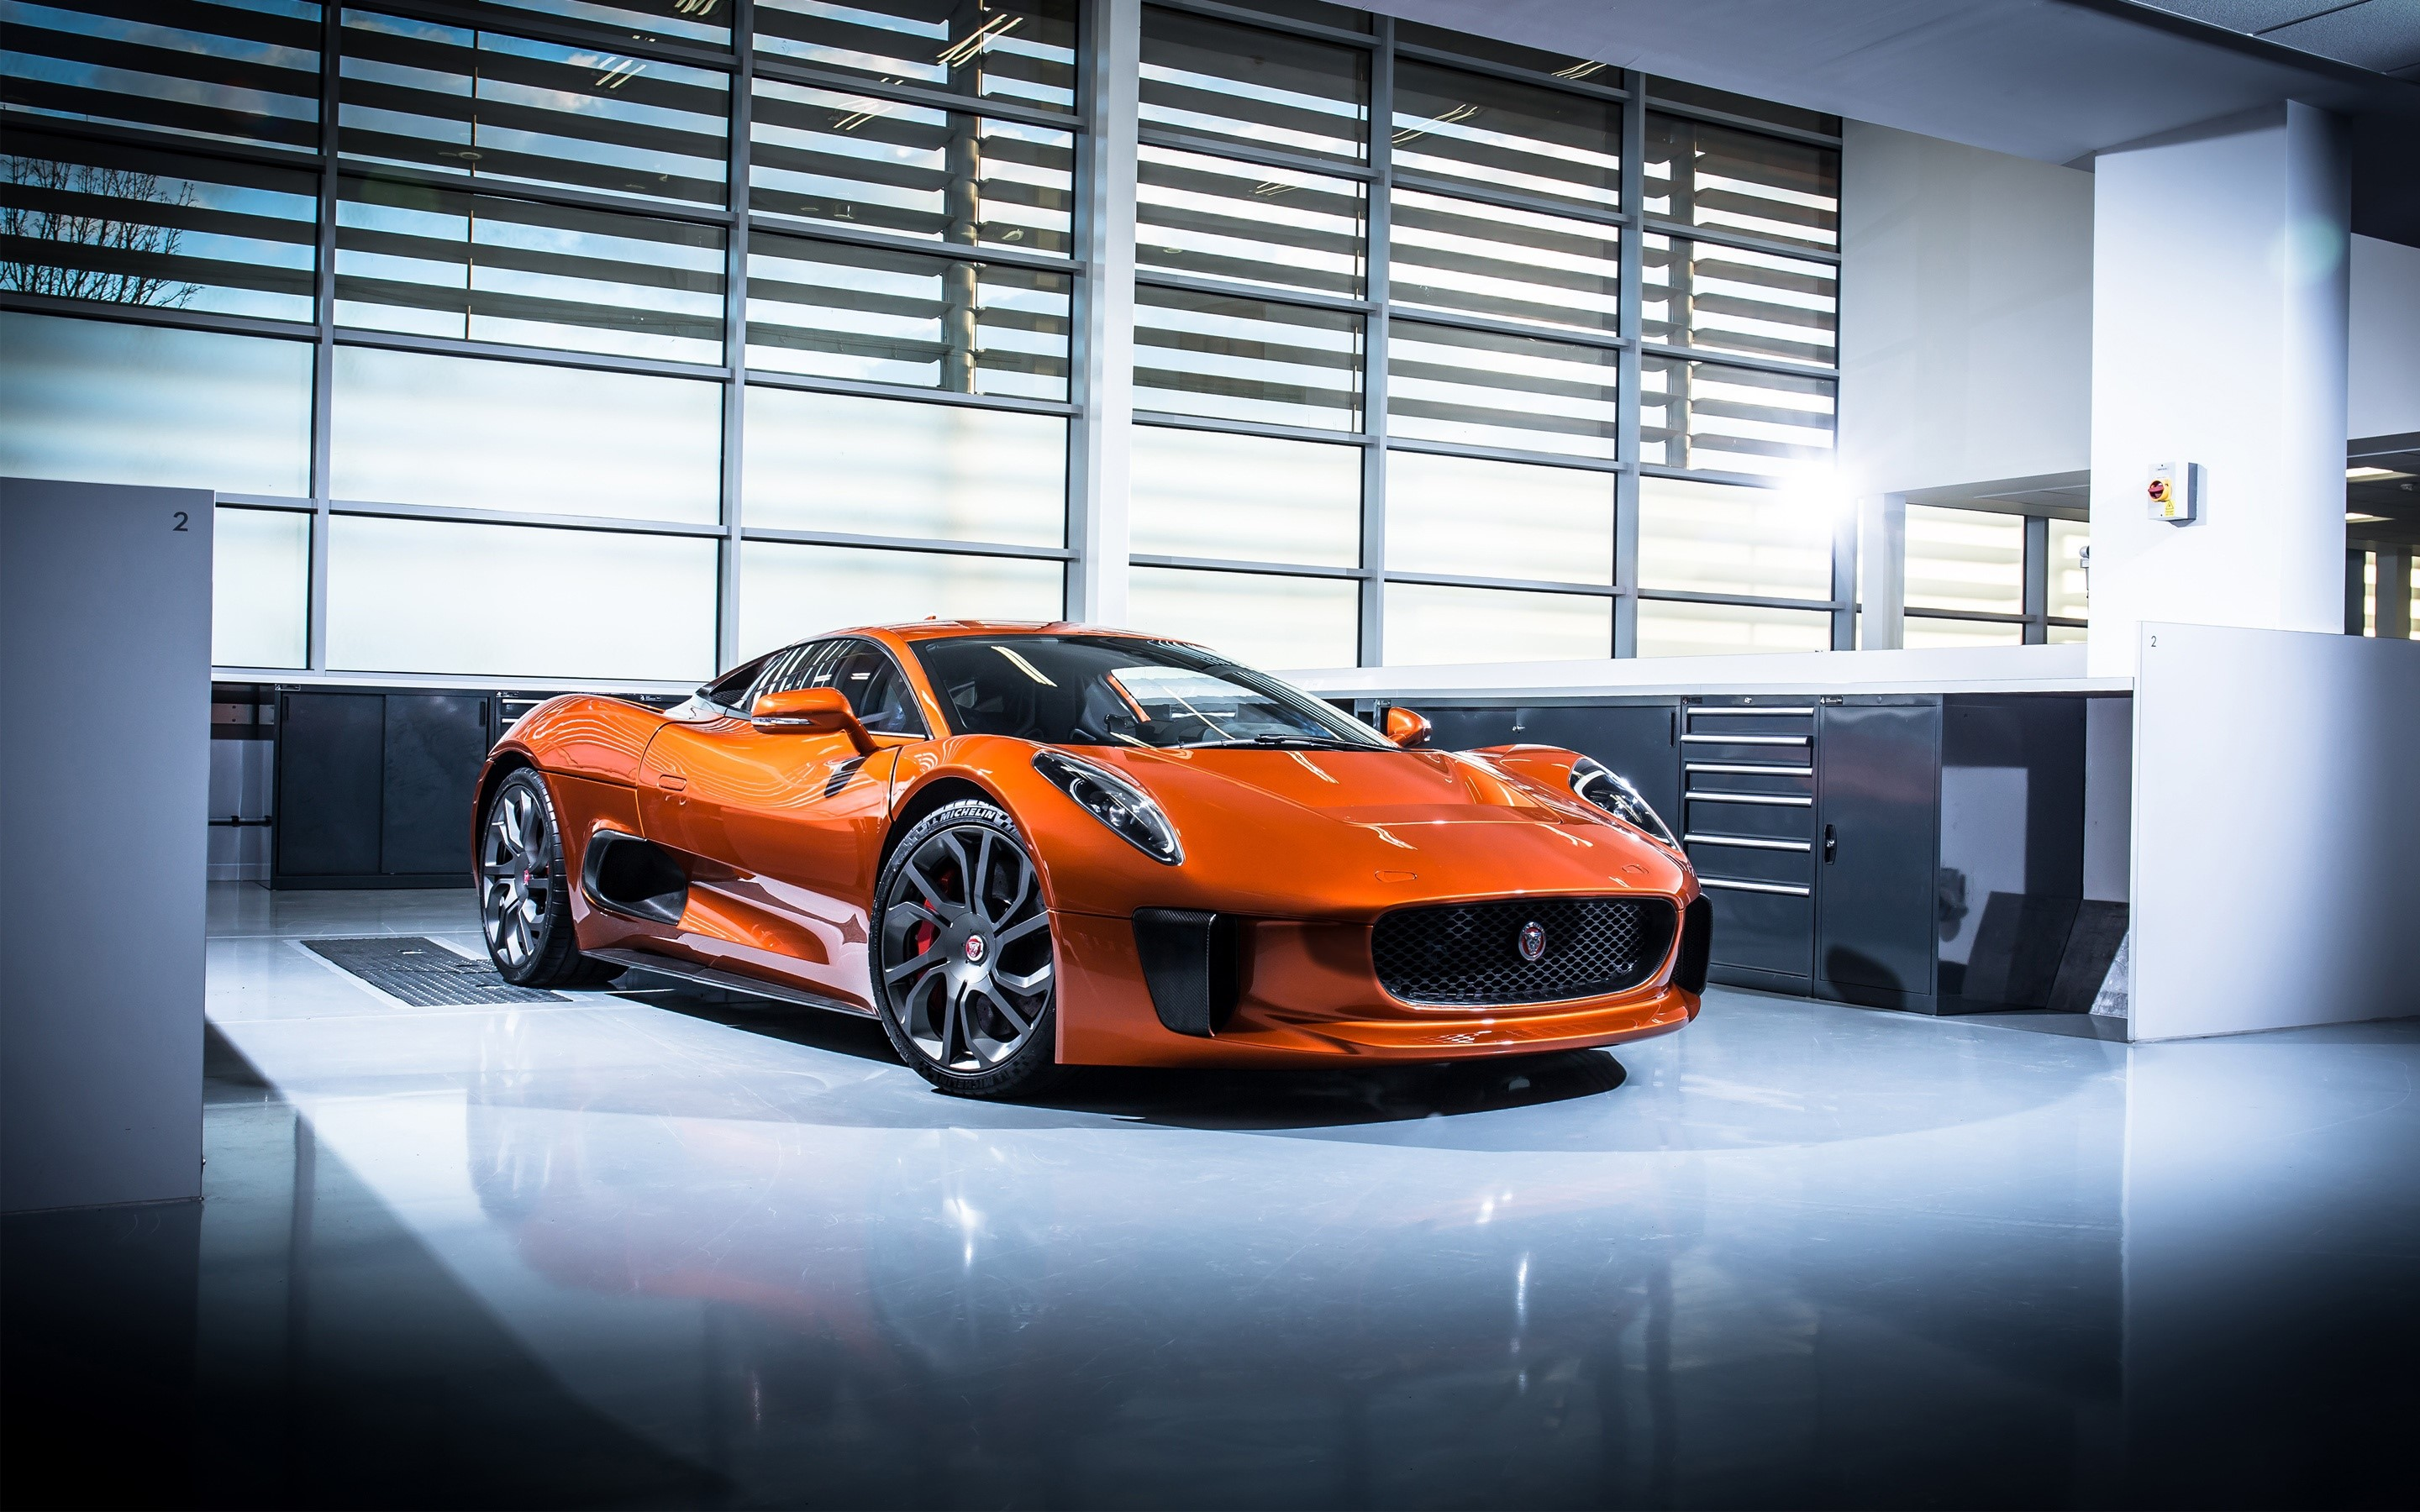 Wallpaper Jaguar C X75 Specter Cart